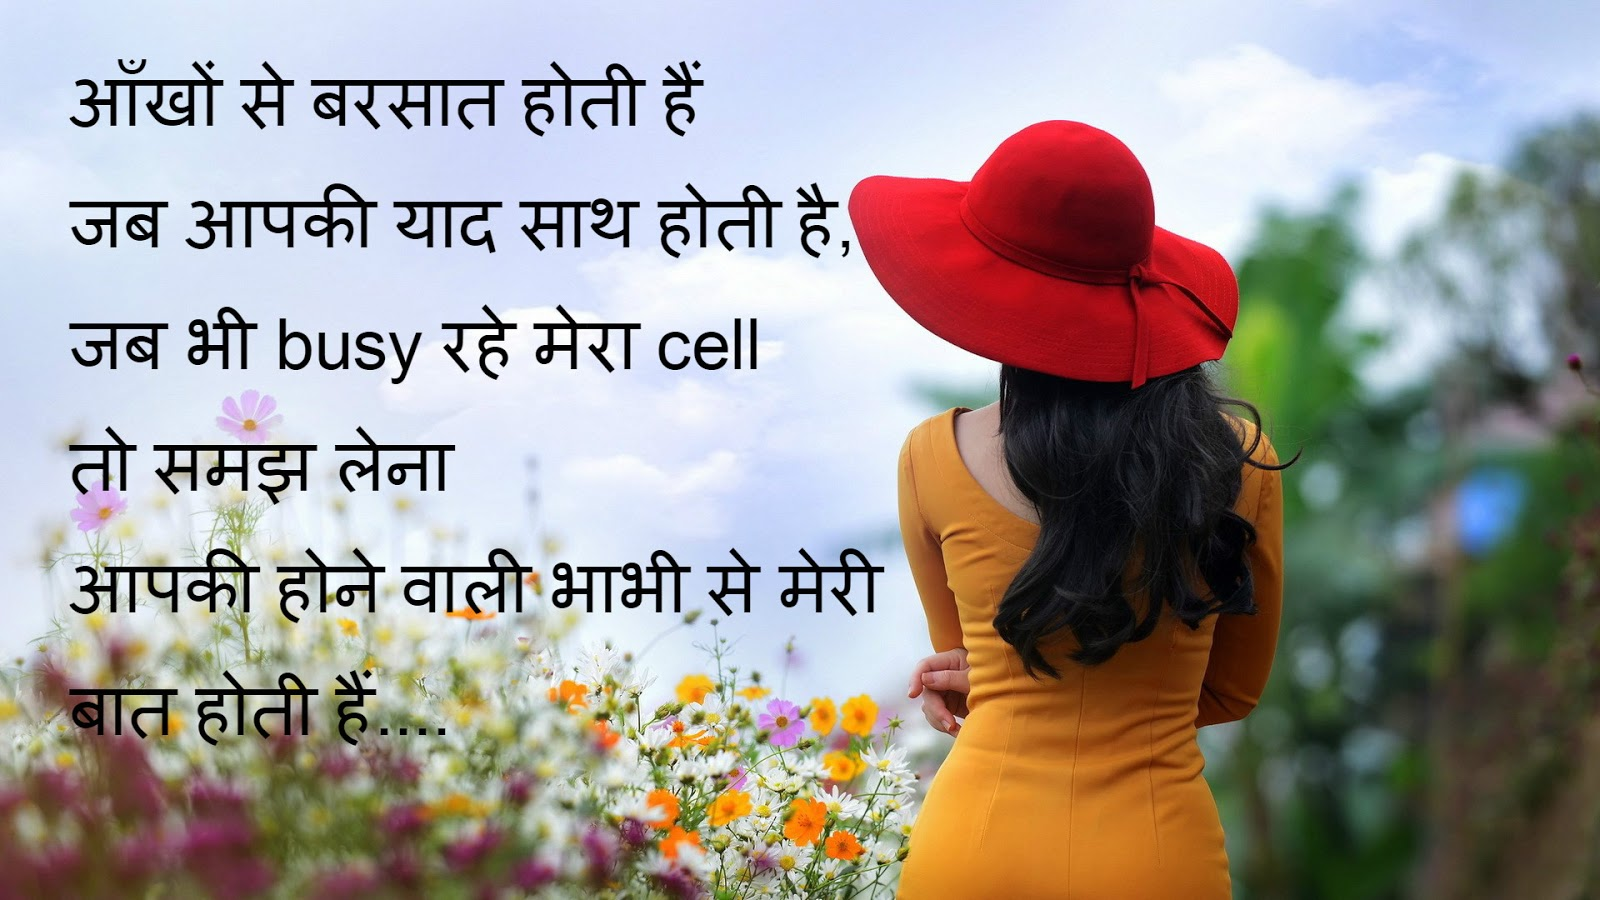 Romantic Shayari Wallpaper Download Hd Shayari Photo Download 895126 Hd Wallpaper Backgrounds Download